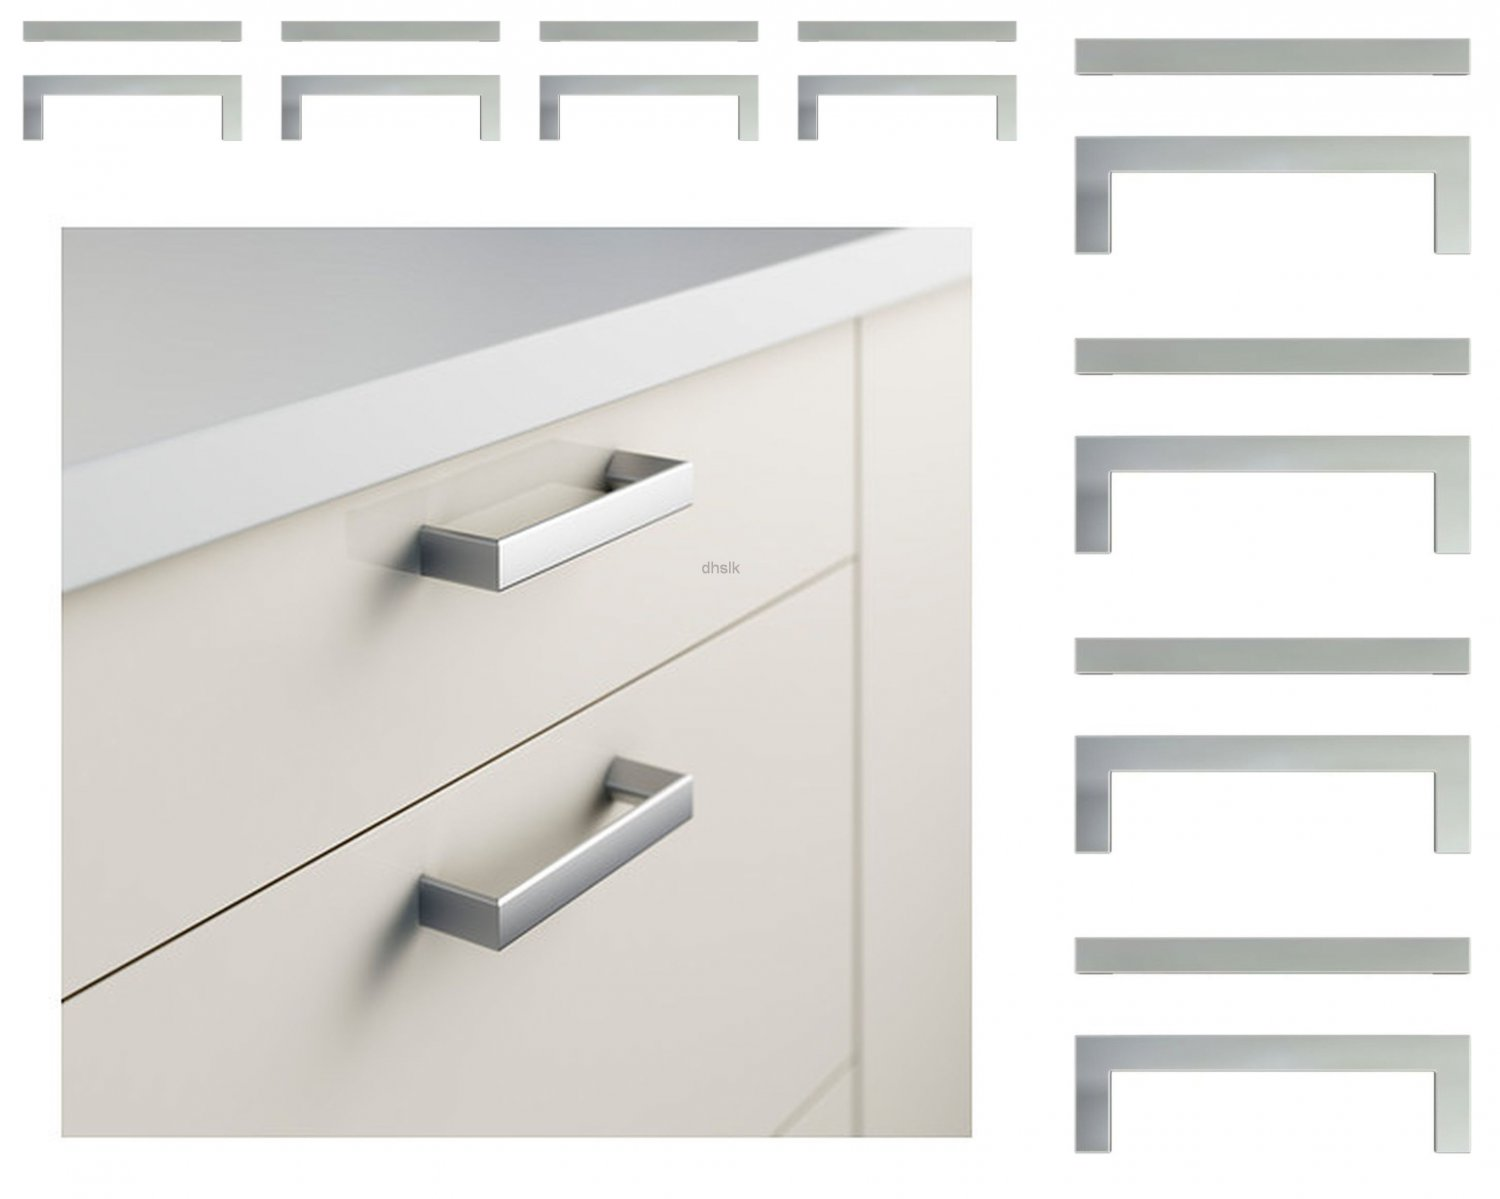 ikea drawer installation instructions